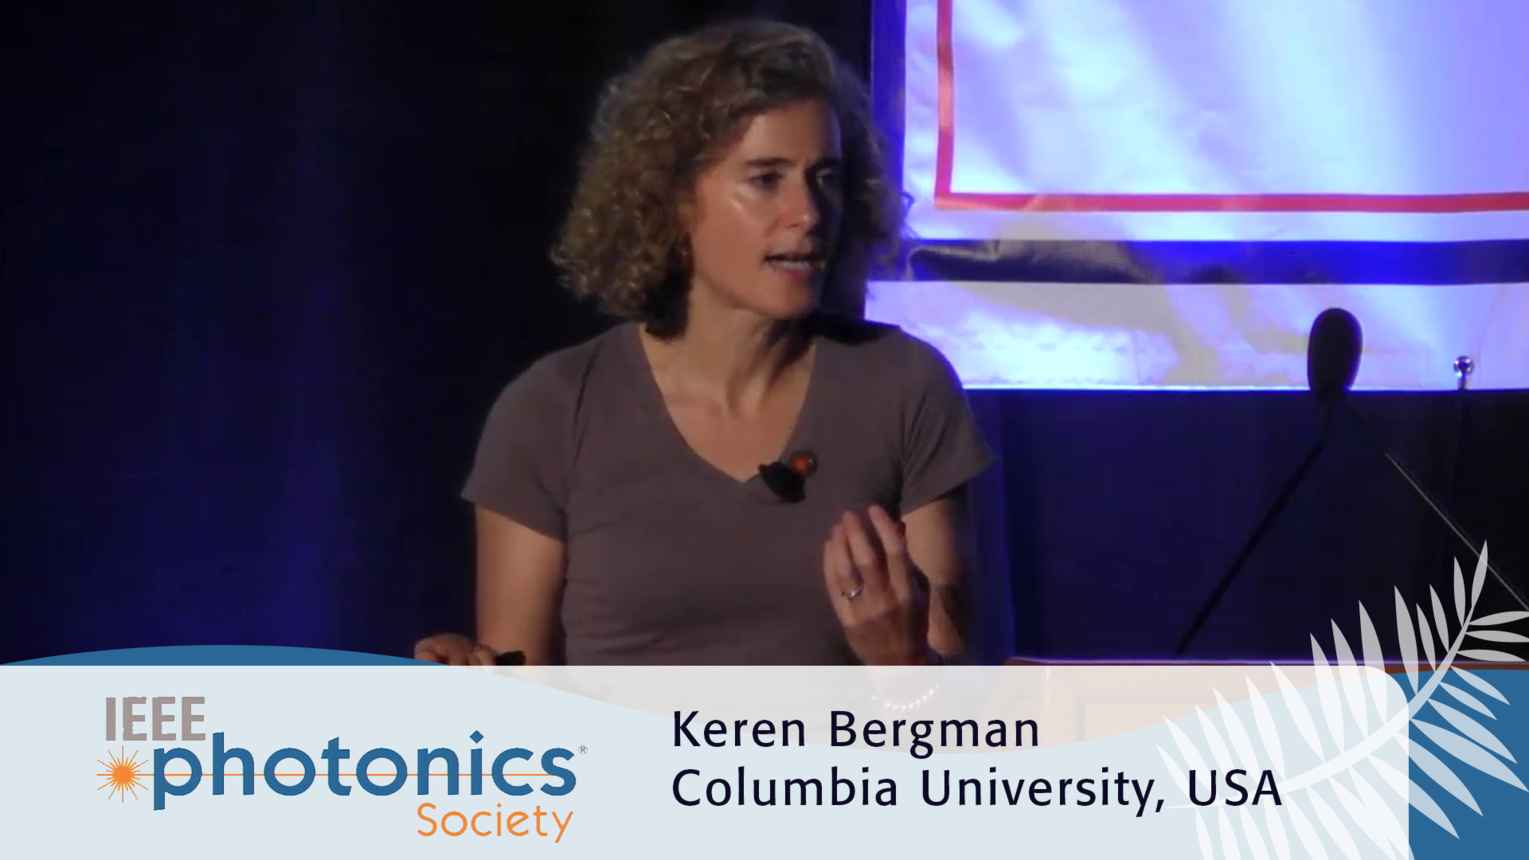 Optically Interconnected Extreme Scale Computing - Keren Bergman Plenary from the 2016 IEEE Photonics Conference